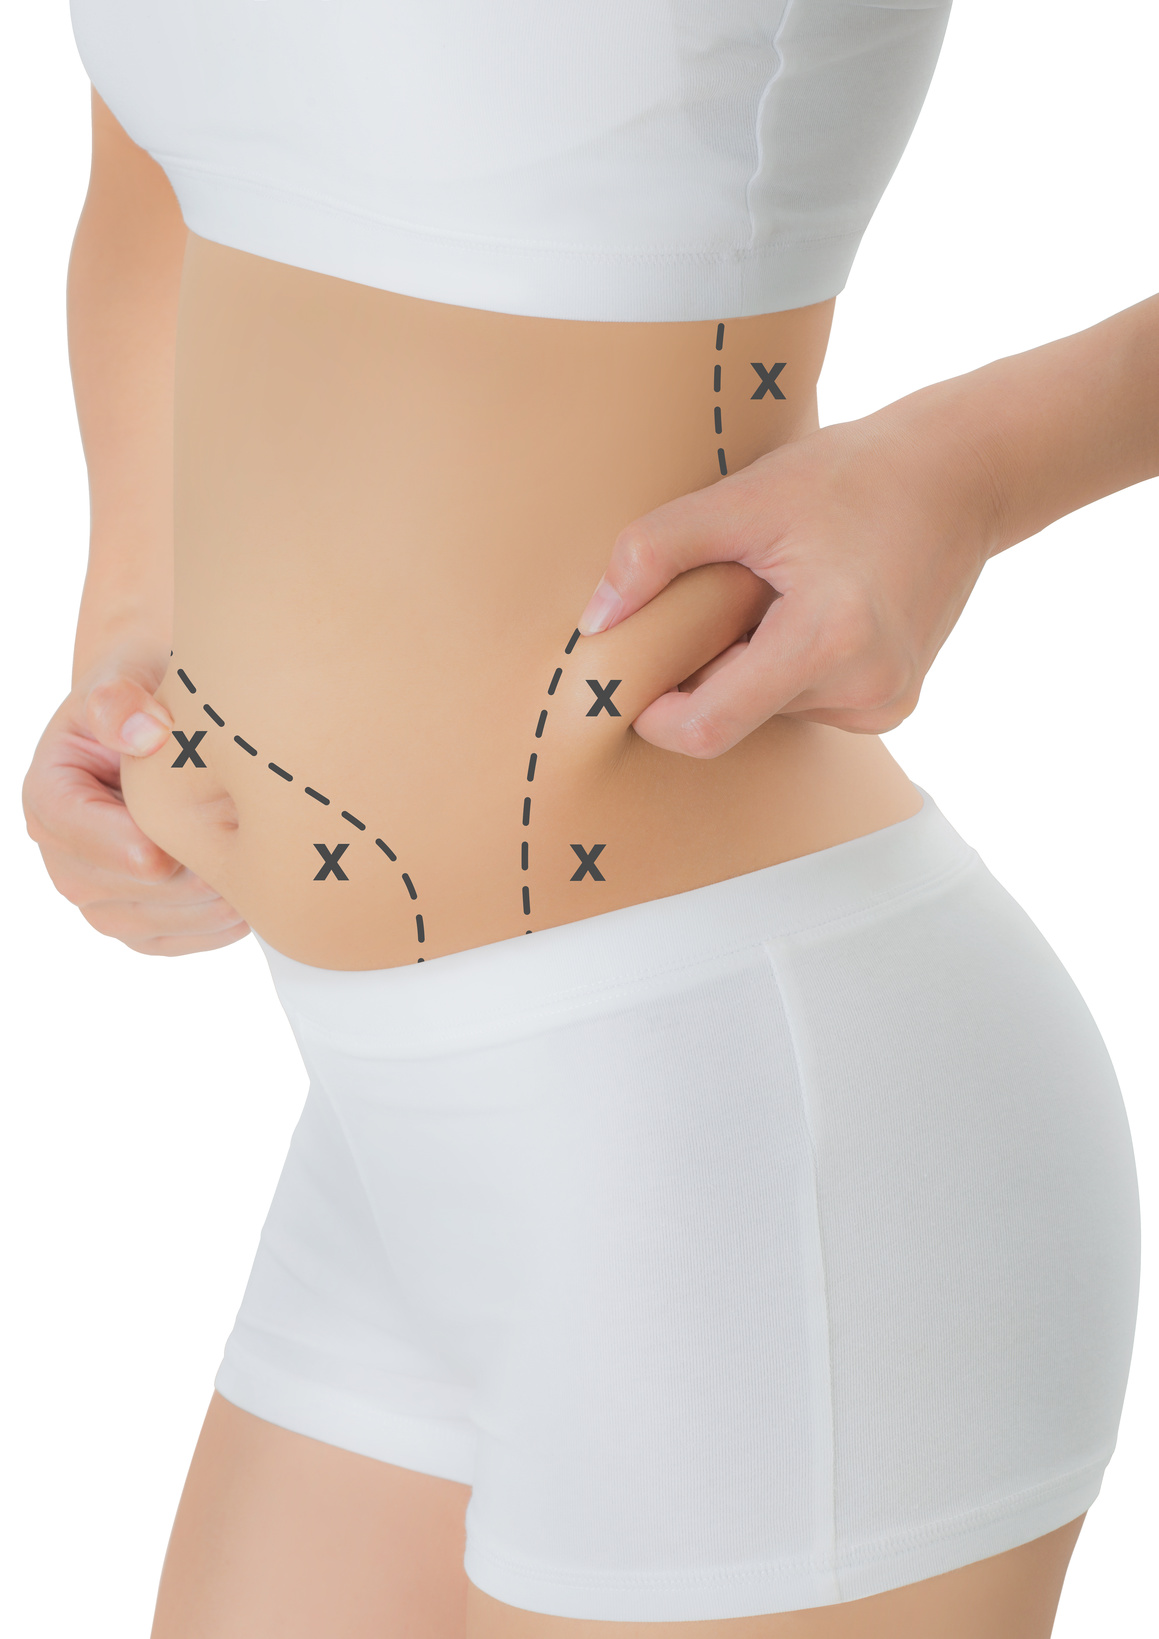 woman grabbing skin on her hip and belly with the black color crosses marking, Lose weight and liposuction cellulite removal concept, Isolated on white background.